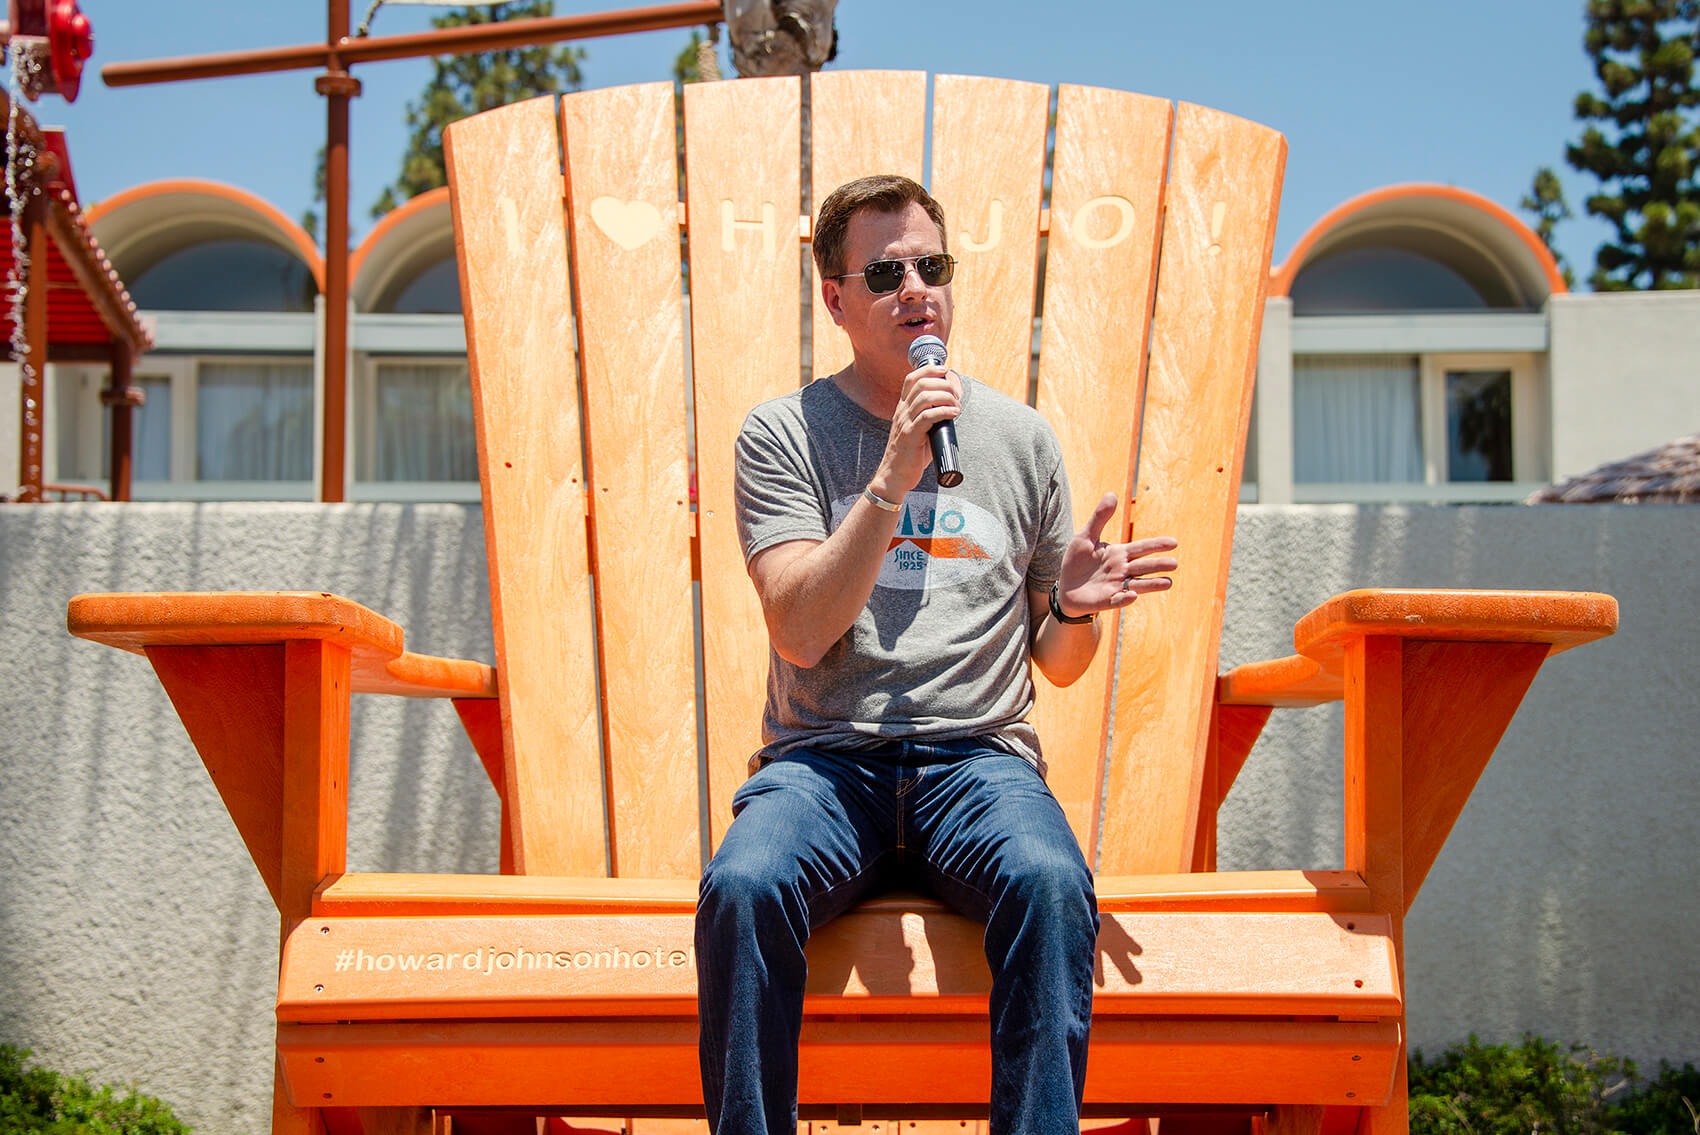 the General Manager of Howard Johnson Anaheim, Jonathan Whitehead, speaks into a microphone atop a giant orange beach chair